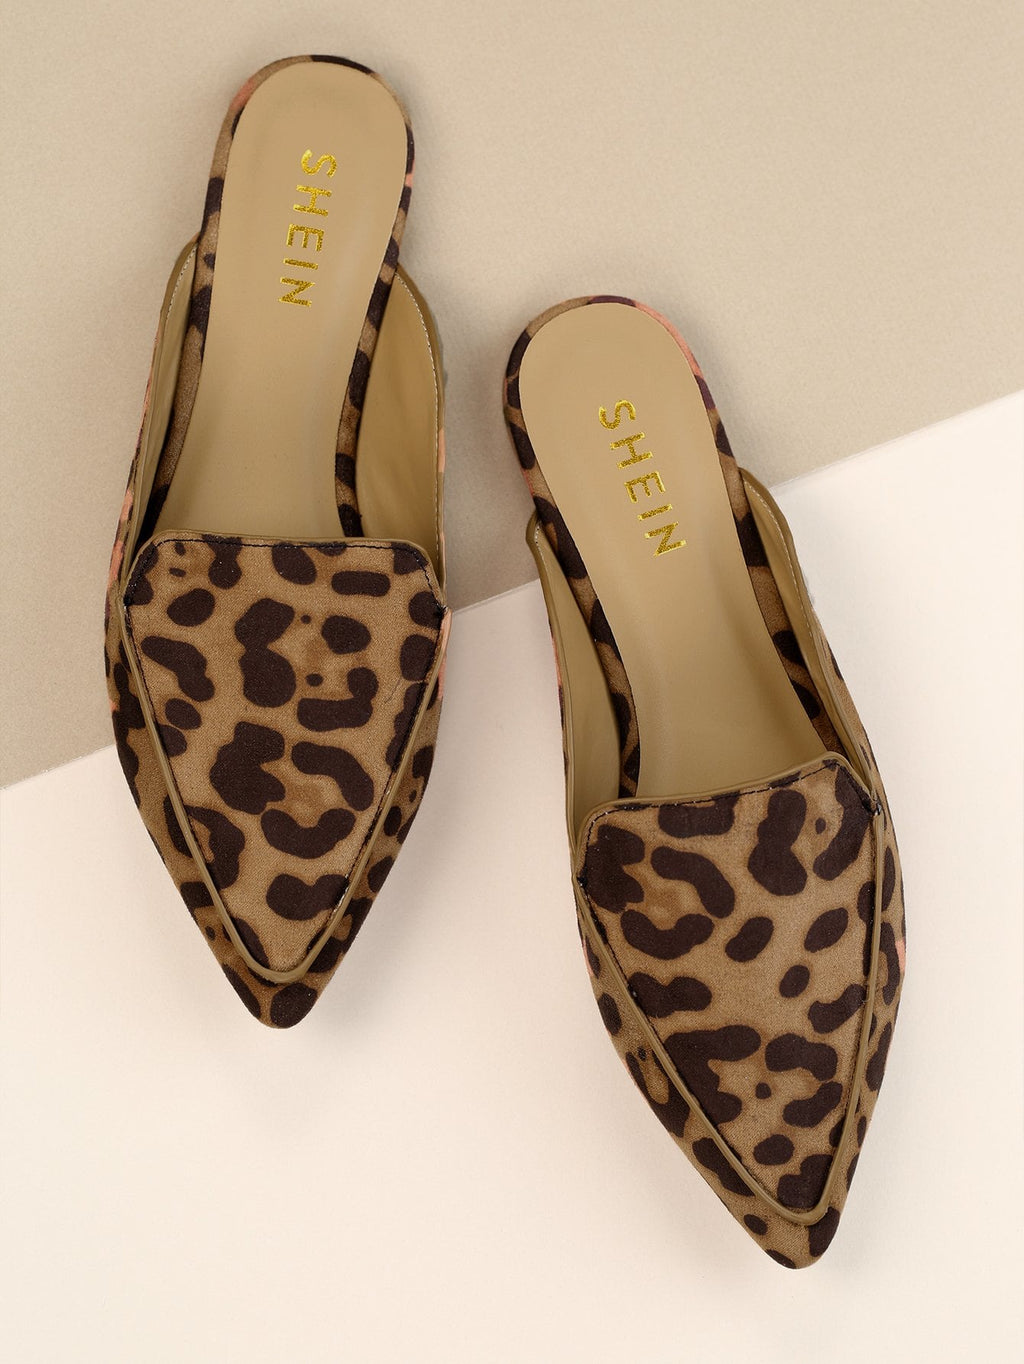 Spitz Zehe Loafer Mules mit Leopard Muster